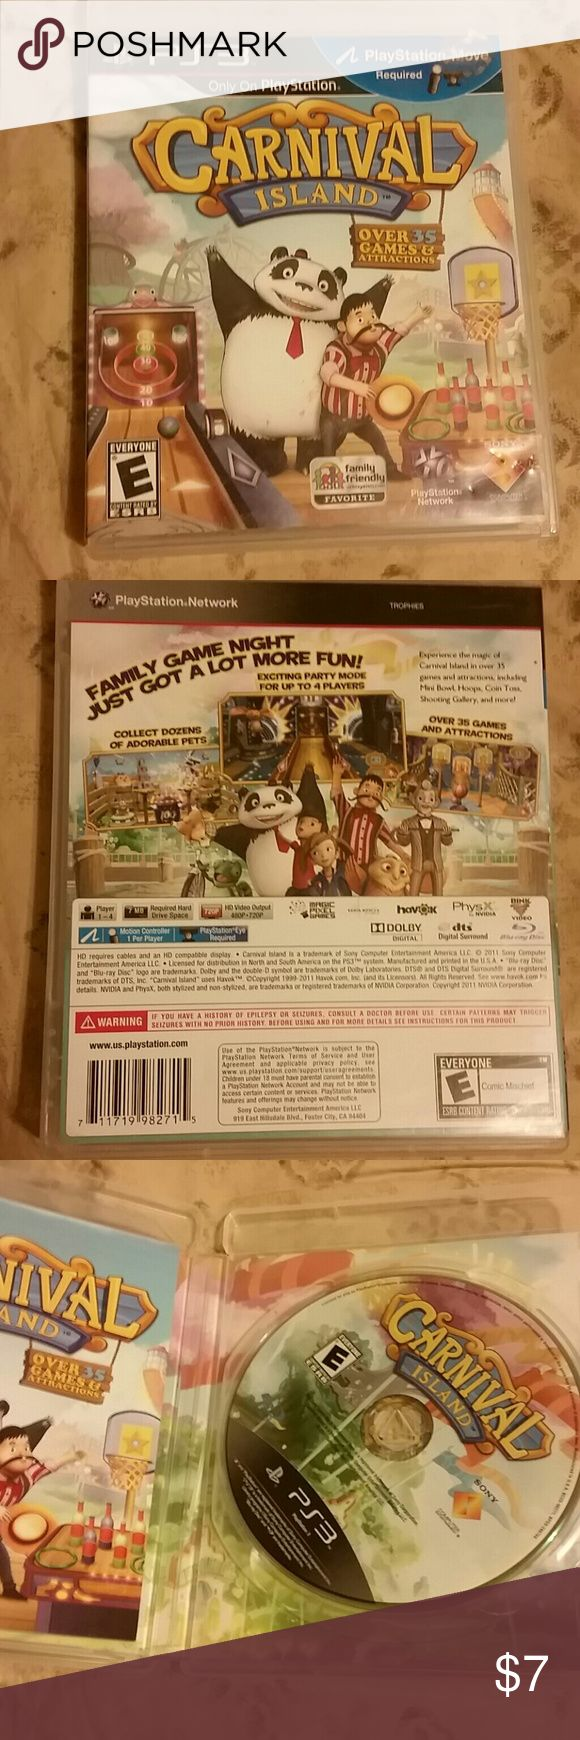 PS3 game, Carnival Island Rated E for everyone,  does require Playstation Move in order to play. Excellent condition,  just didn't have the part needed for the game. Playstation 3 Other